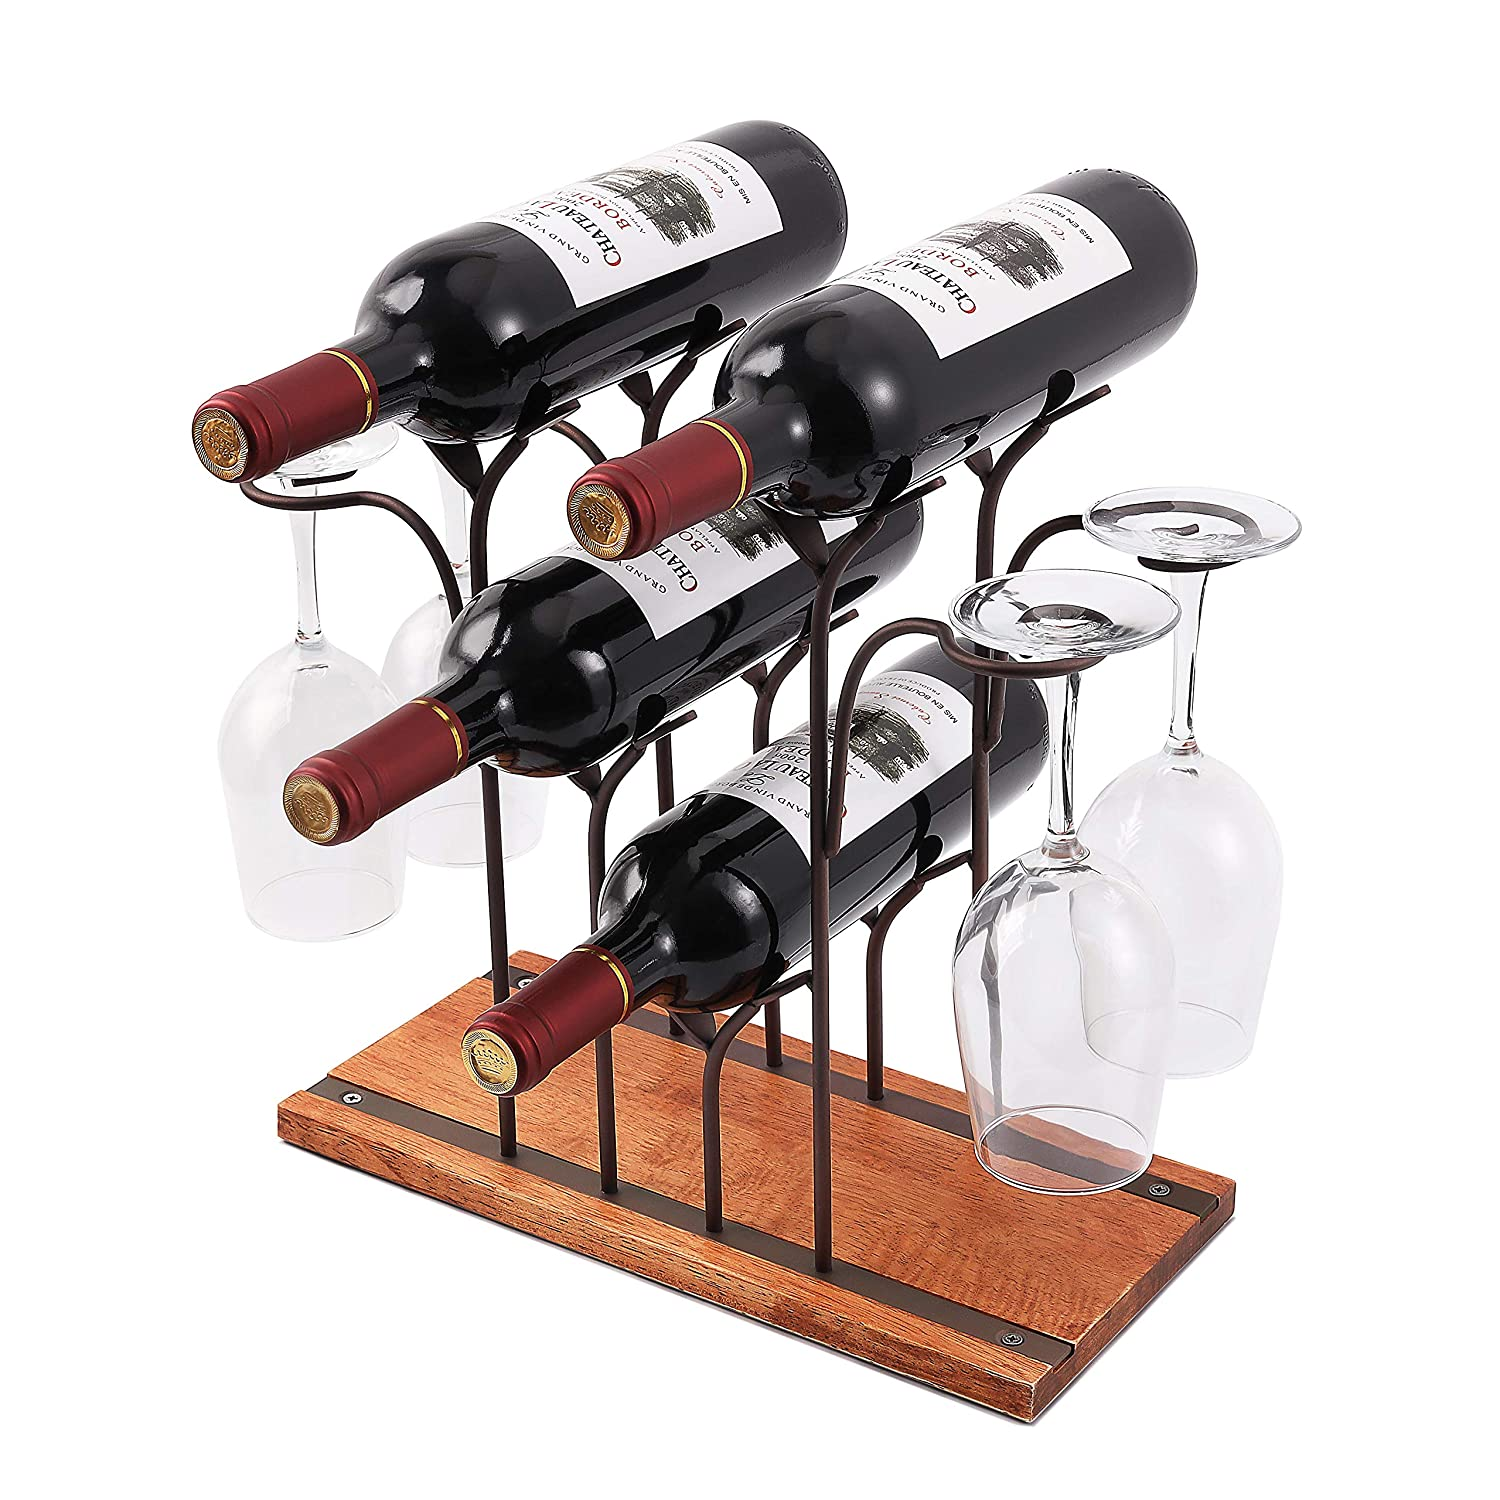 Countertop Wine Rack, Tabletop Wood Wine Holder, Perfect For Home Decor & Kitchen Storage Rack, Bar, Wine Cellar, Cabinet, Pantry, etc ,Hold 4 Wine Bottles and 4 Wine Glasses, Wood & Metal (Bronze)